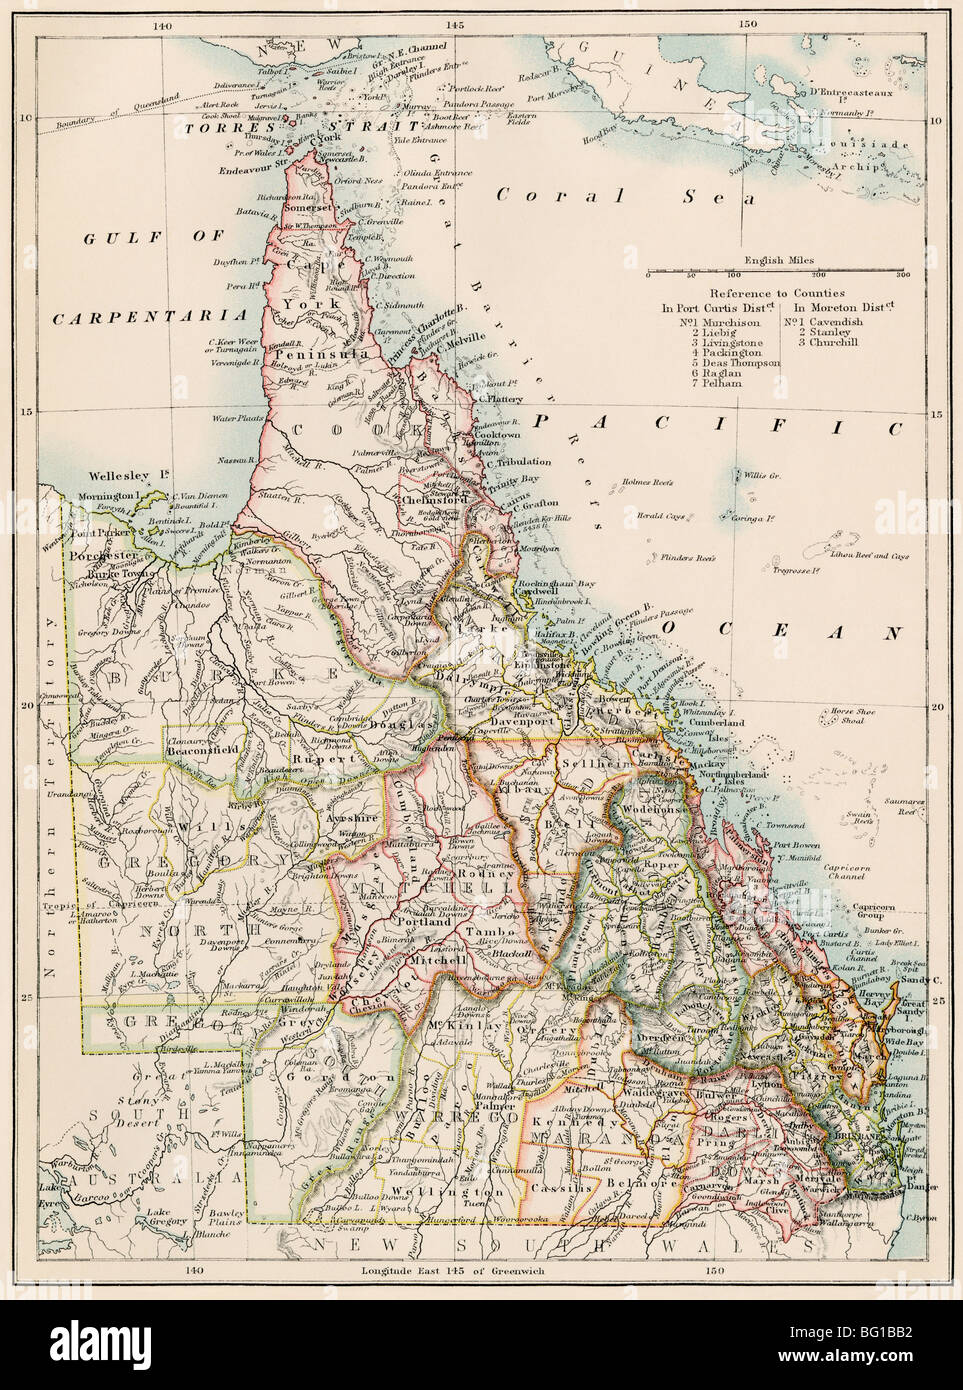 Map Of Queensland Australia.Map Of Queensland Australia 1870s Color Lithograph Stock Photo